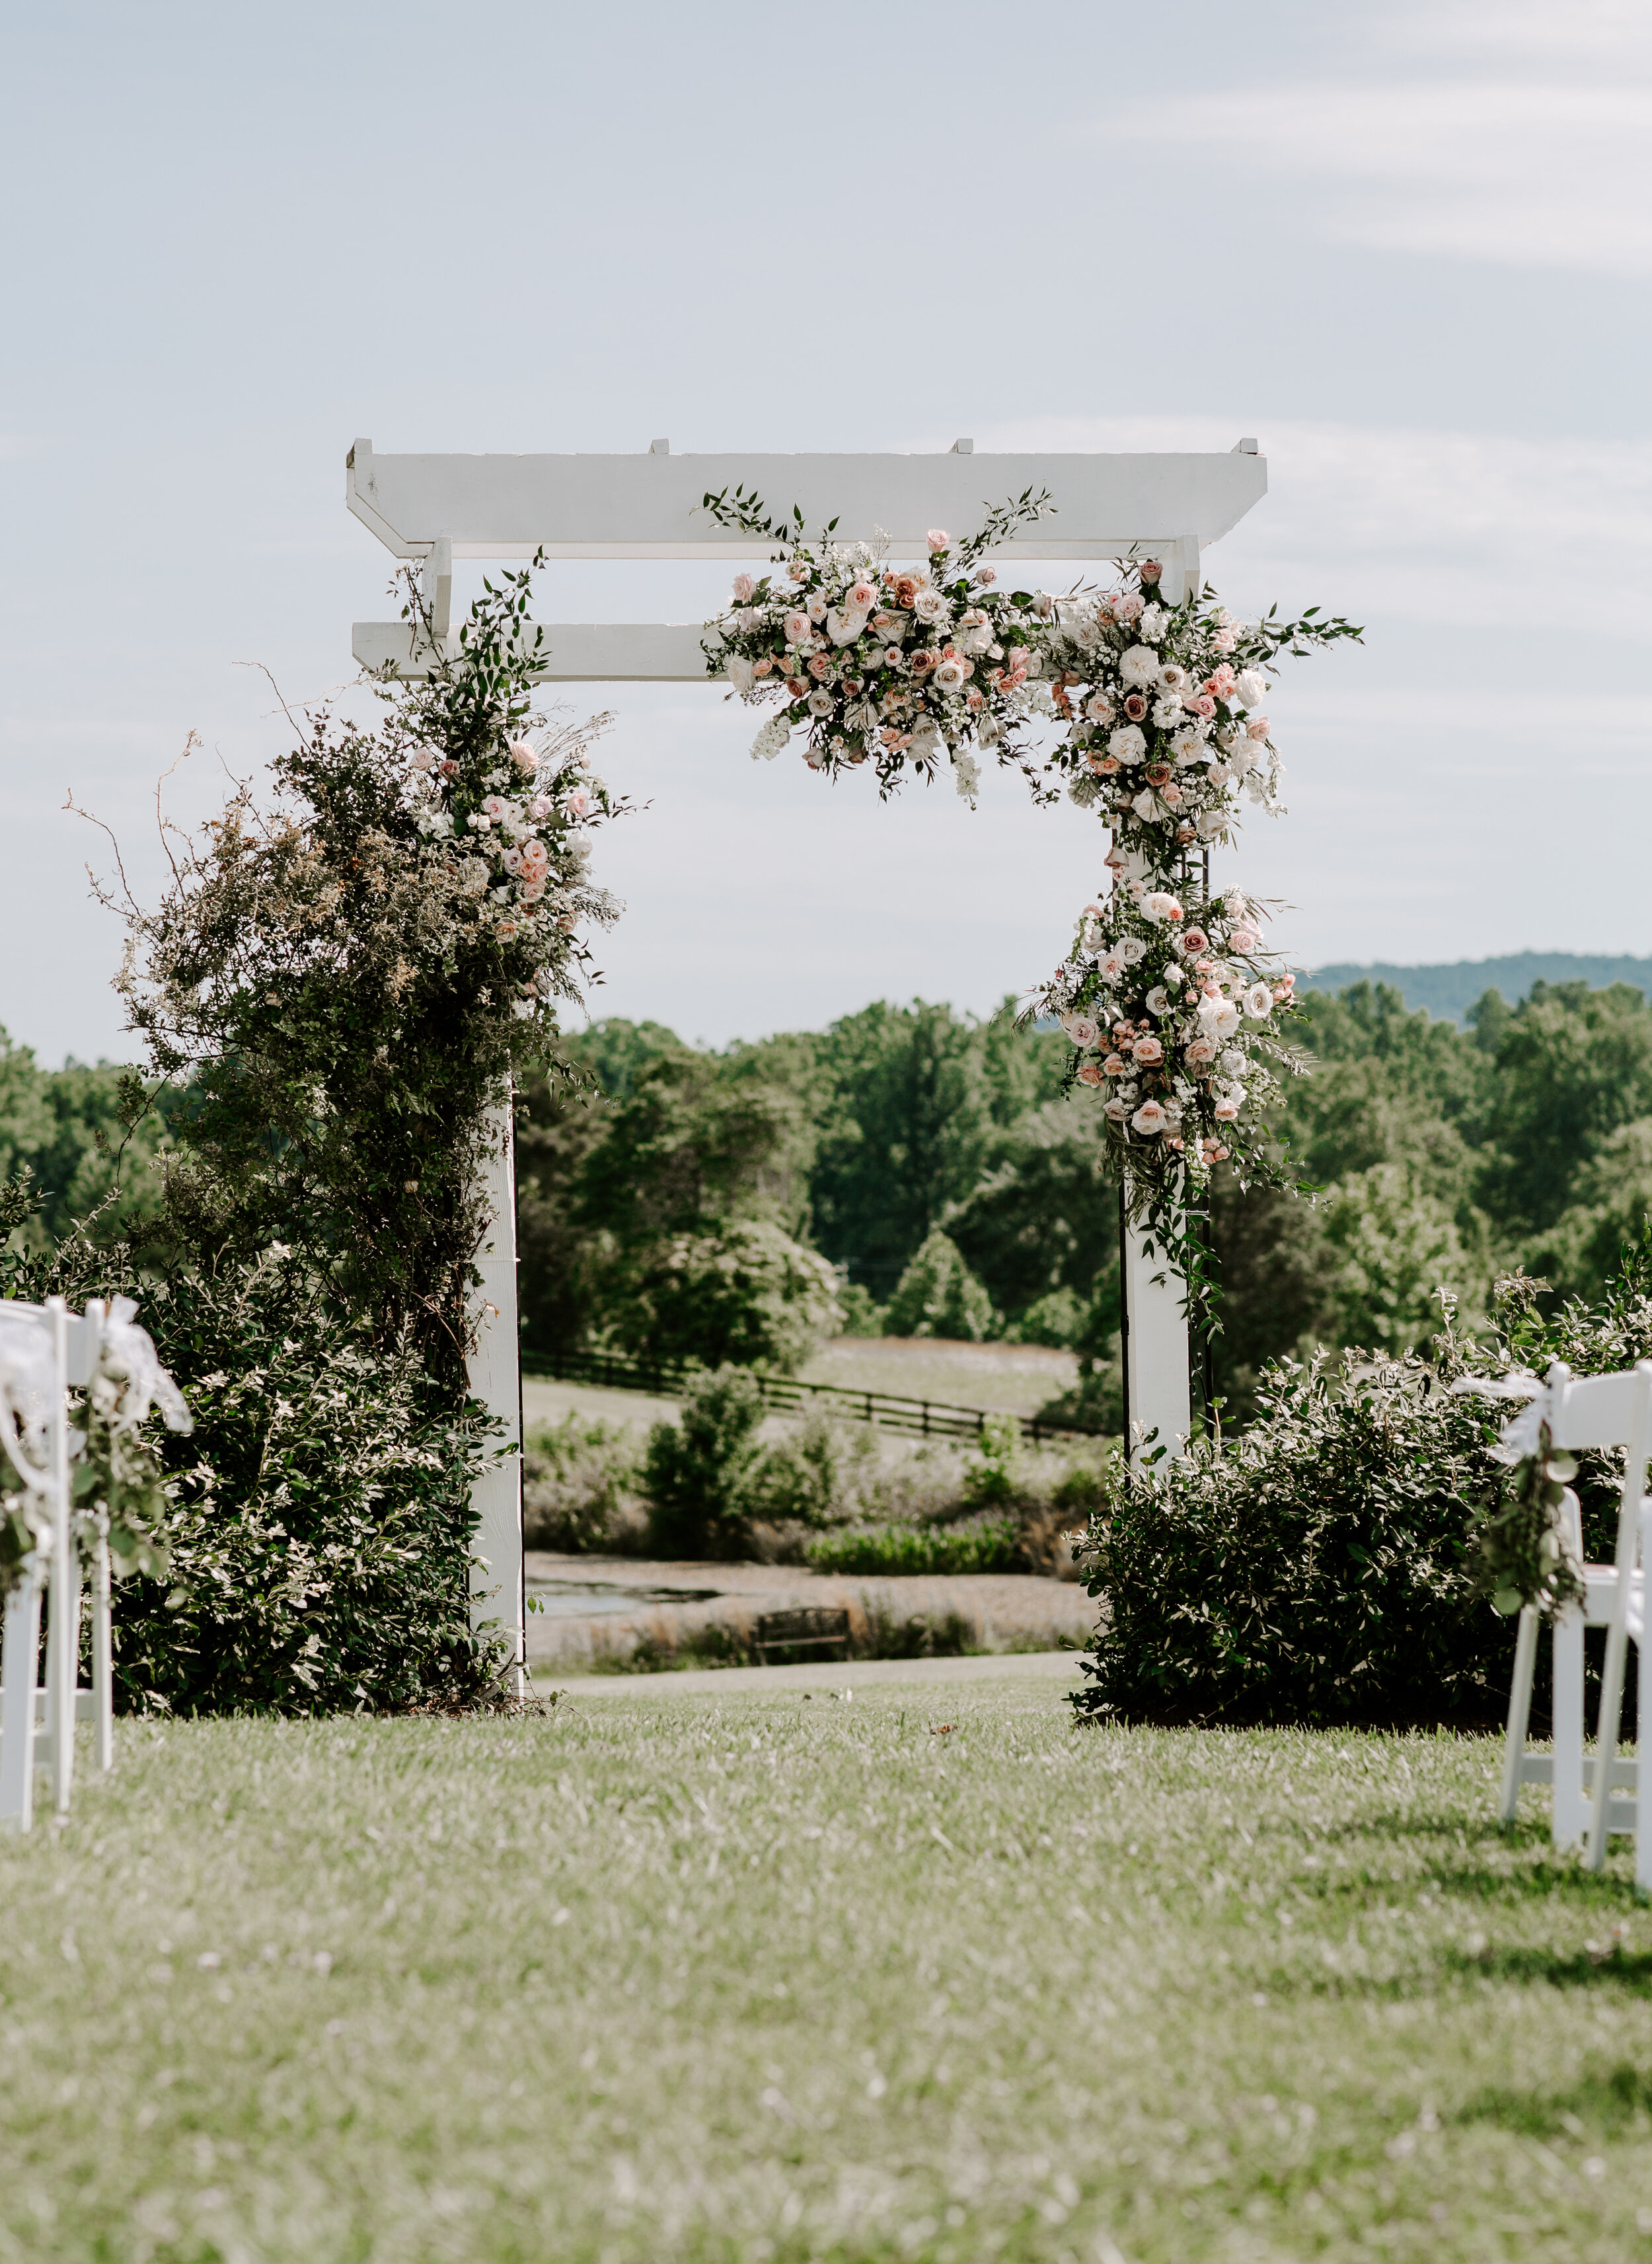 Summer Wedding - On a perfect summer day in June, Katelyn & James tied the knot at Walden Hall in Reva, VA. Scroll down to see the magic…